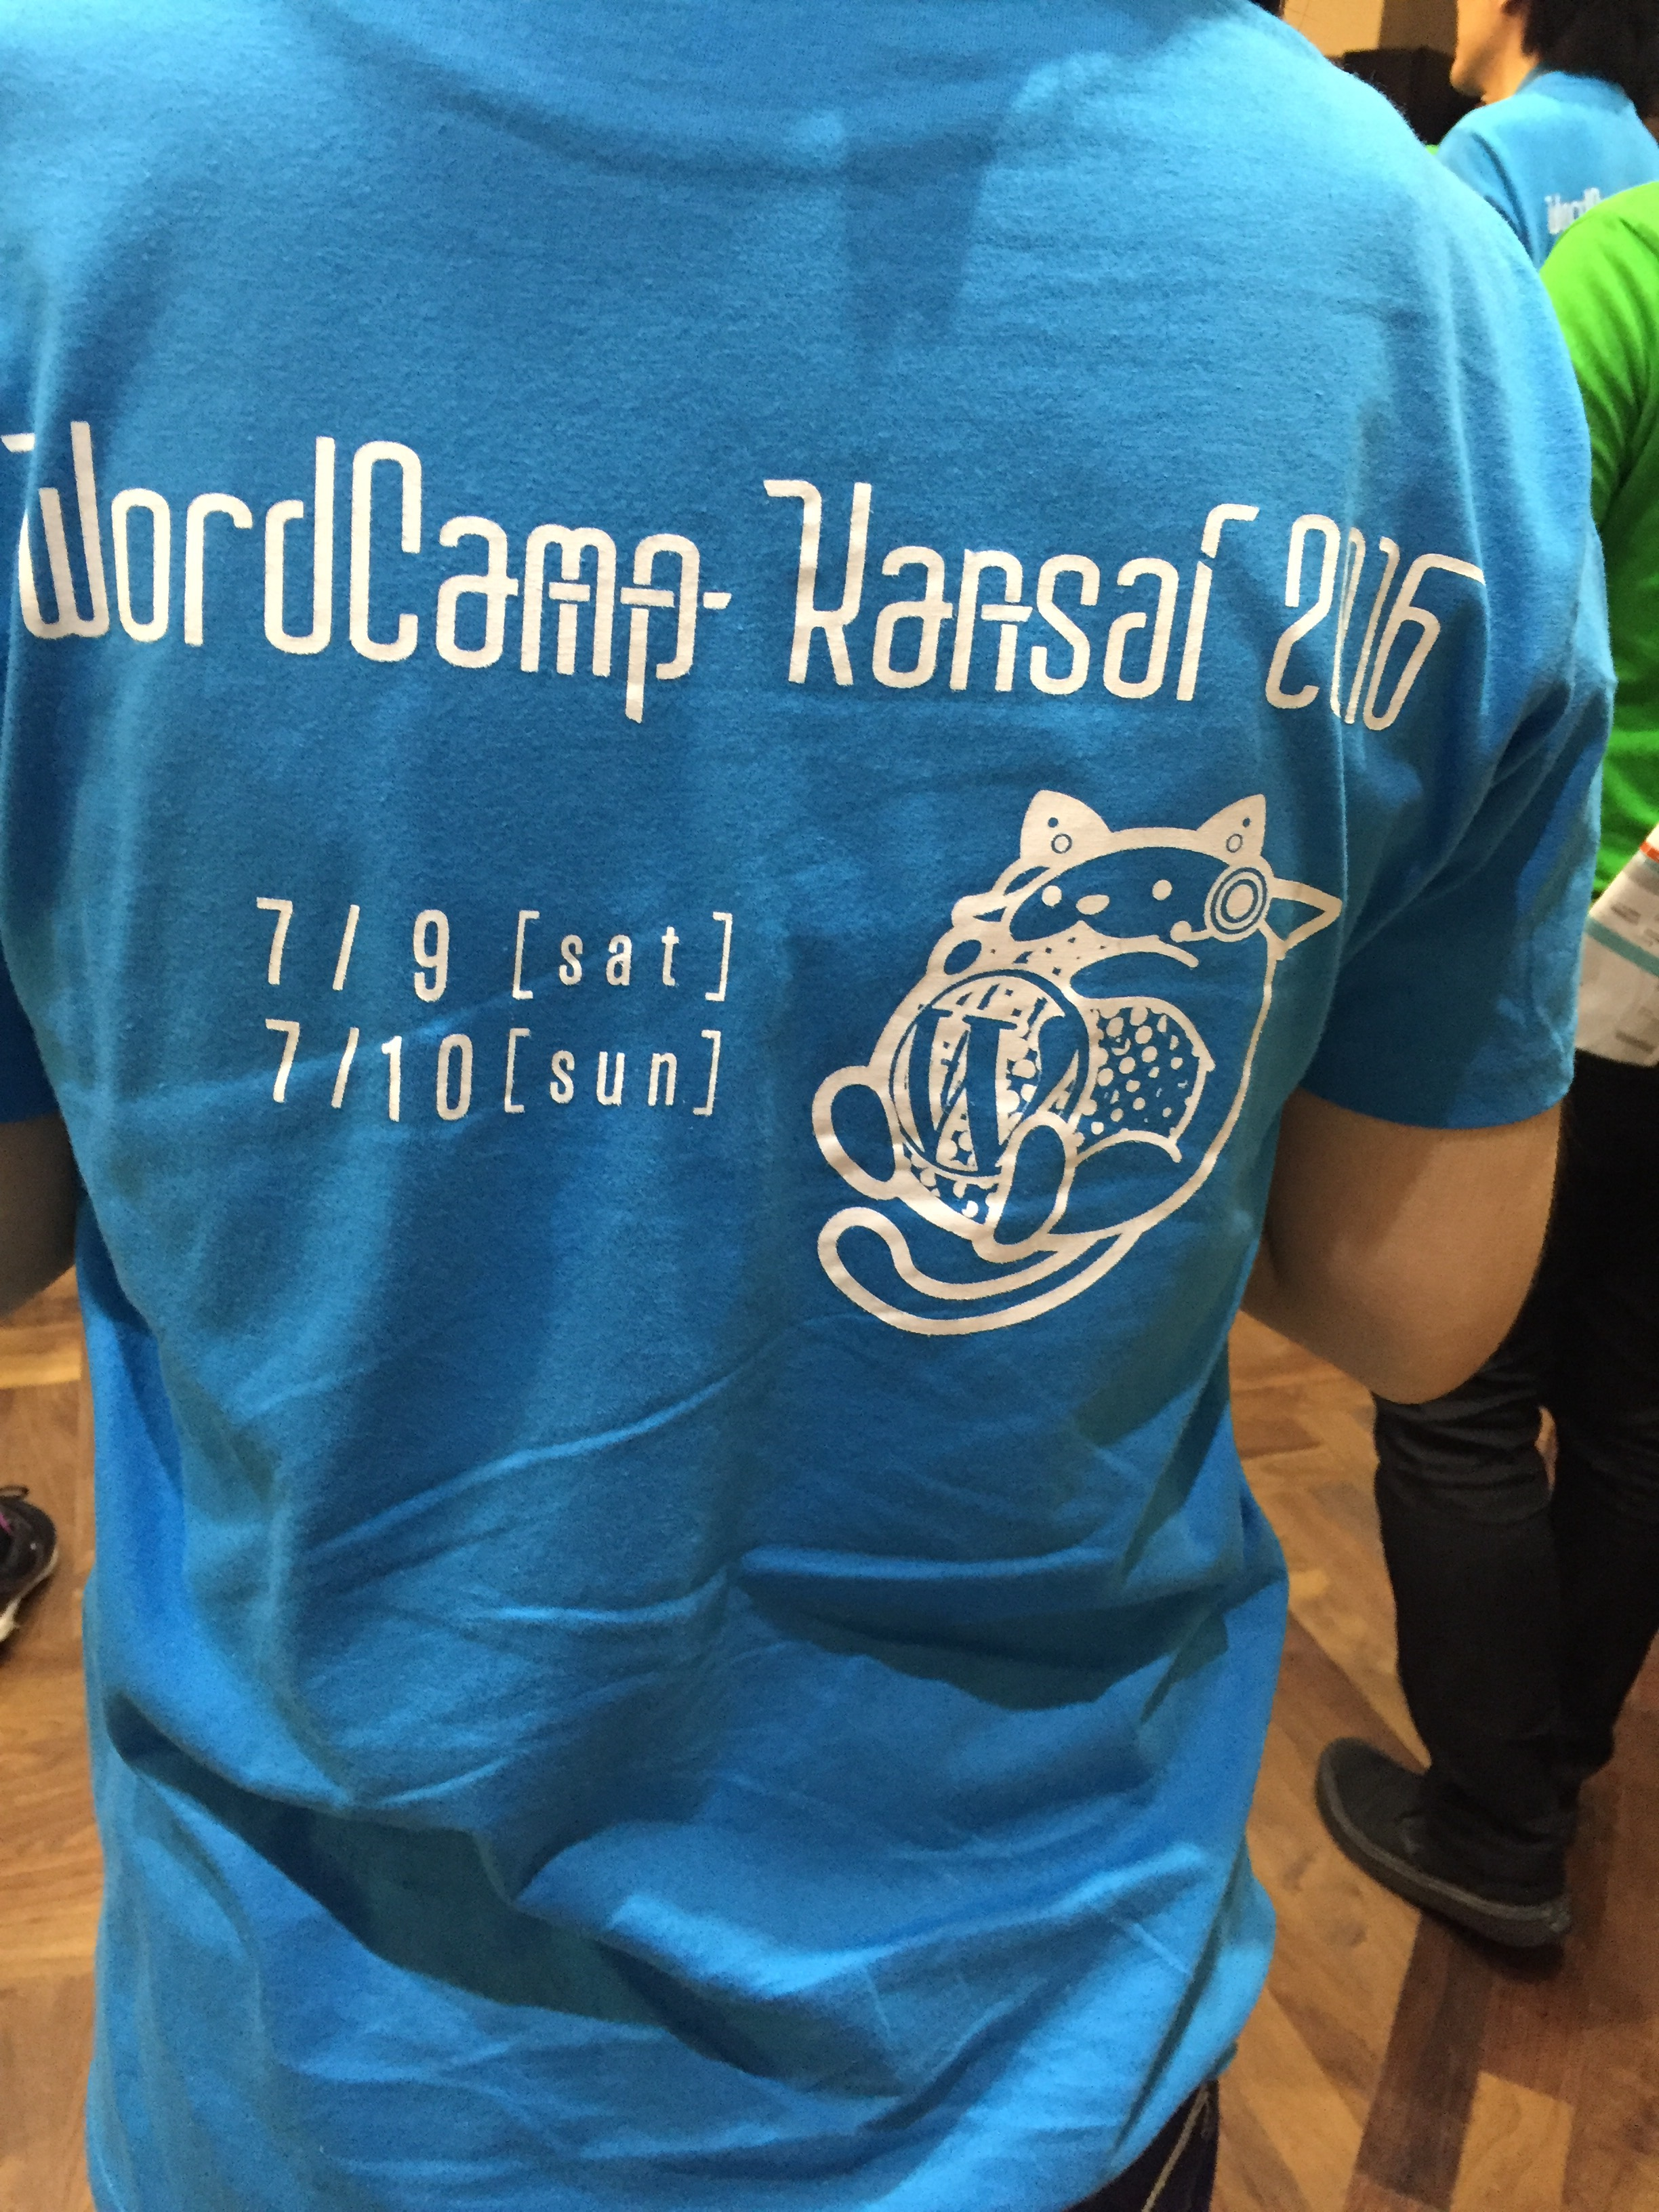 WordCamp Kansai 2016 Tシャツ